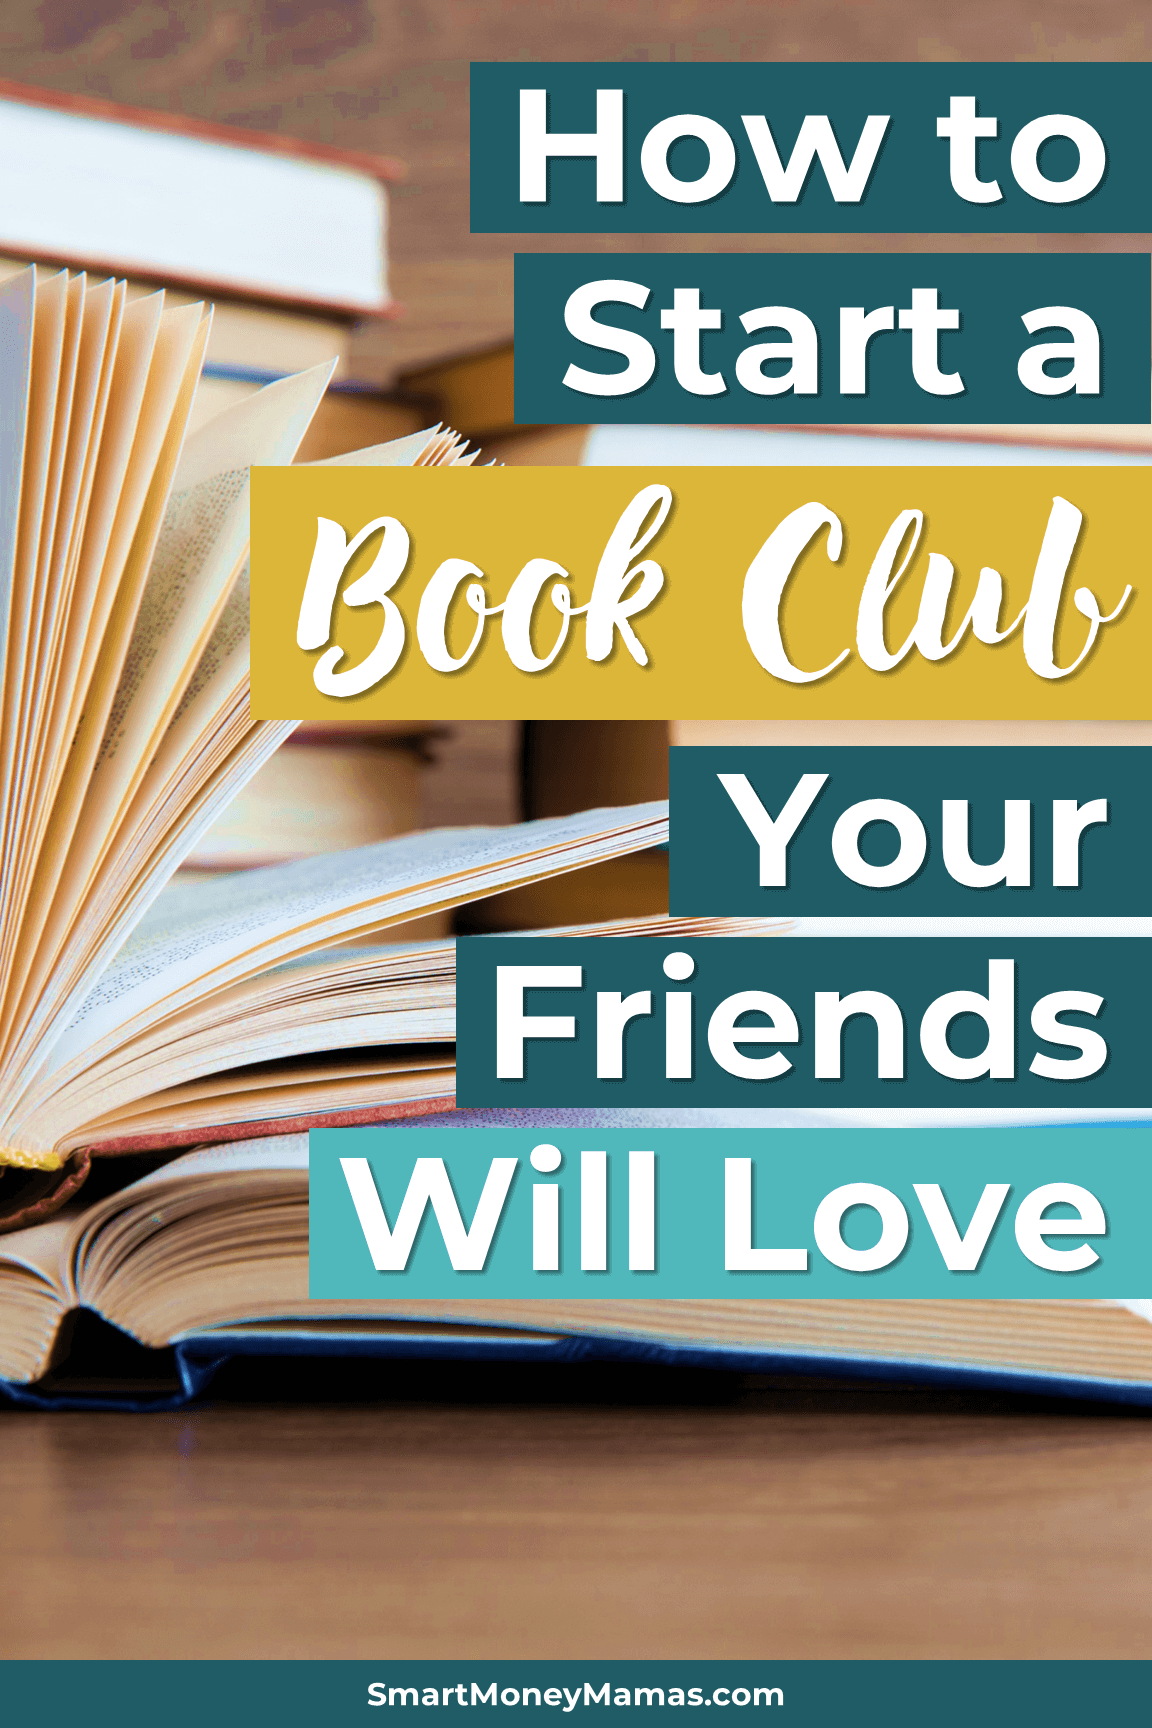 I love reading and have tried to start book clubs in the past, but they tended to fizzle after a month or two. This guide is awesome and definitely can see where I can get better organized next time. Going to think through the steps and invite some of my friends to join a book club with me! I can check off my 2019 goal of reading more #bookclub #reading #booklover #momlife #frugaltips #smartmoneymamas